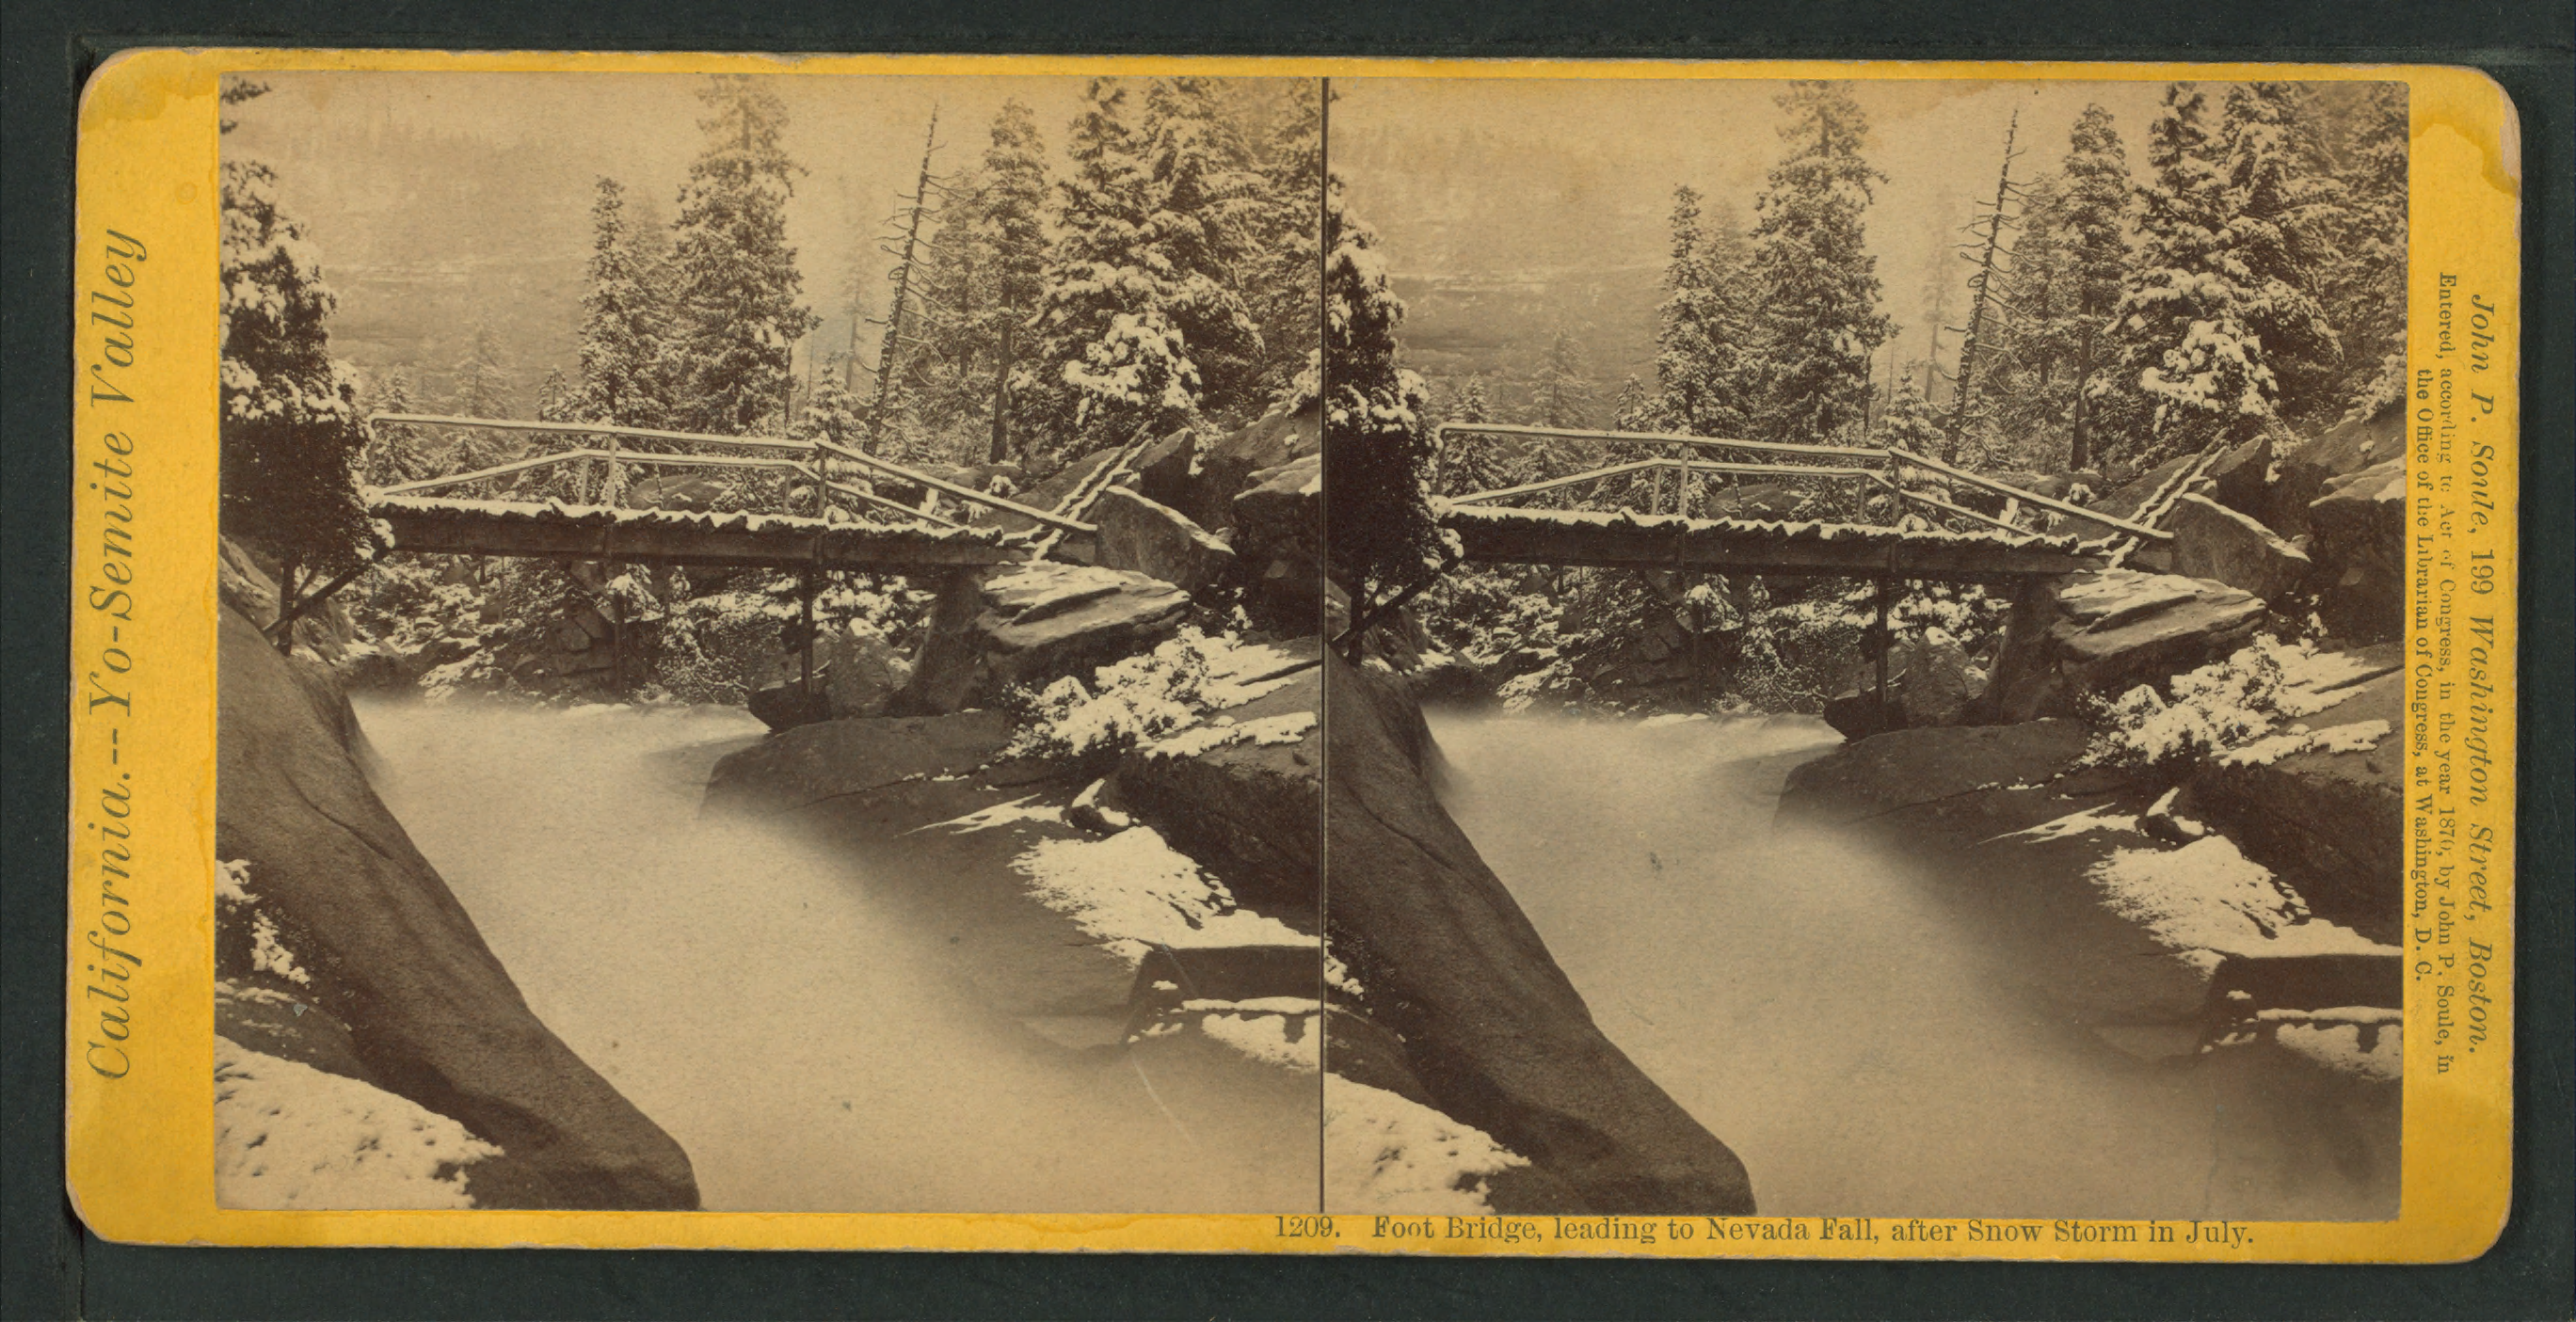 Nevada Fall Png - File:Foot bridge, leading to Nevada Fall, after snow storm in July ...